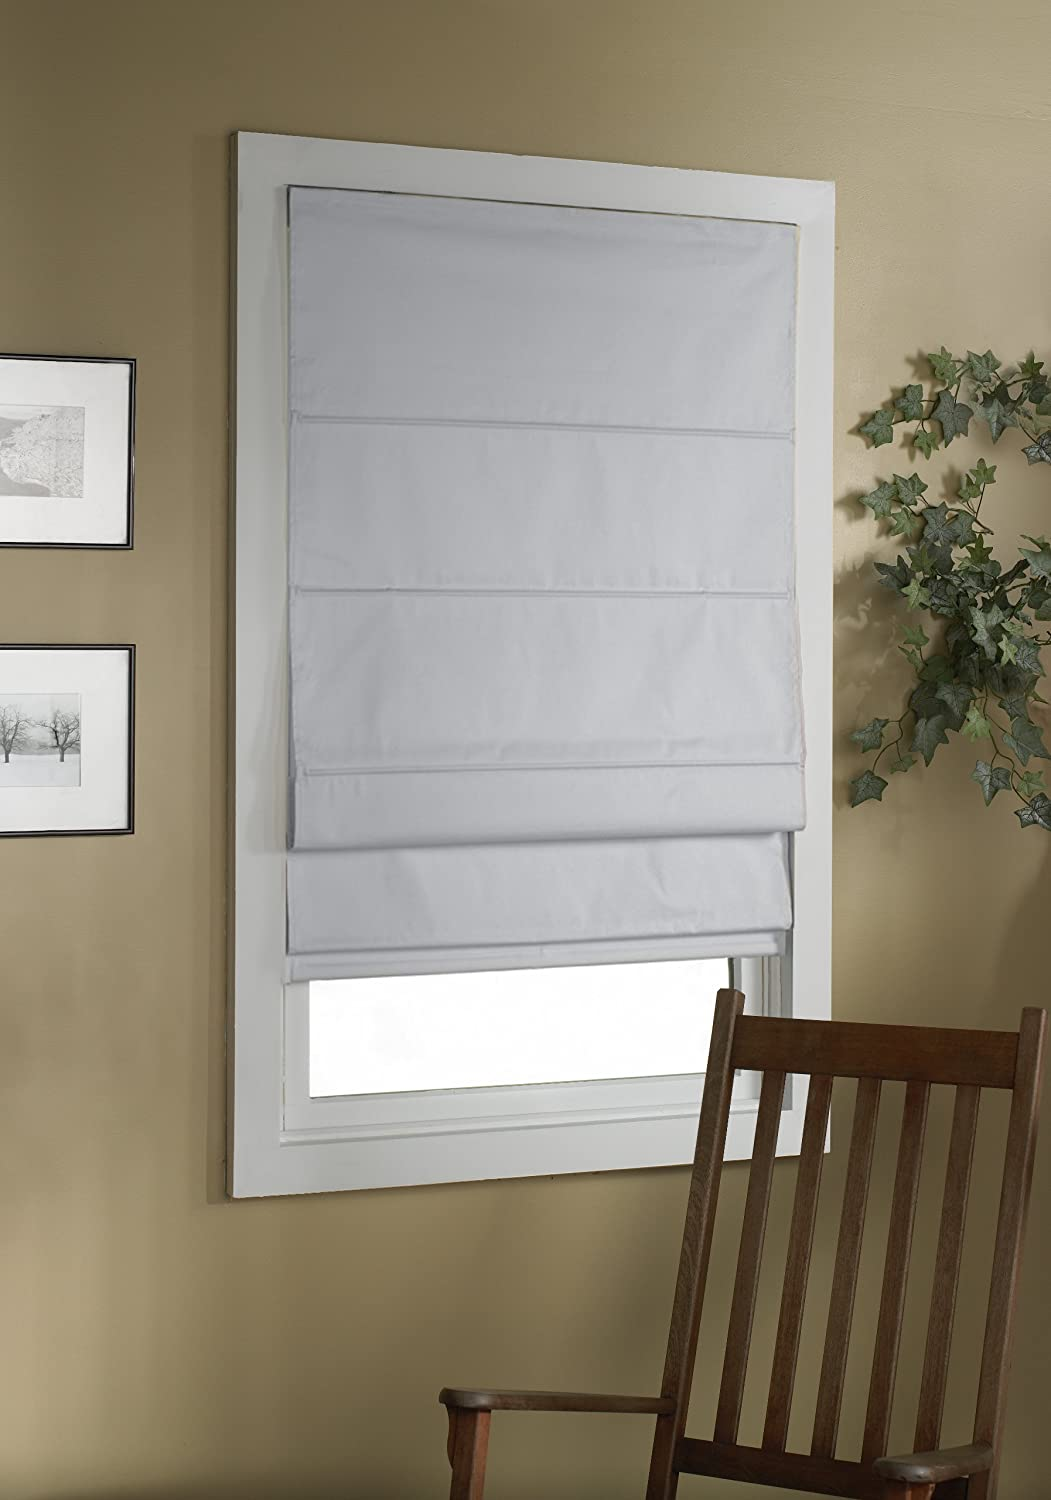 36 inch window blinds - Amazon Com Green Mountain Vista Thermal Blackout Cordless Roman Shade 34 By 63 Inch White Home Kitchen